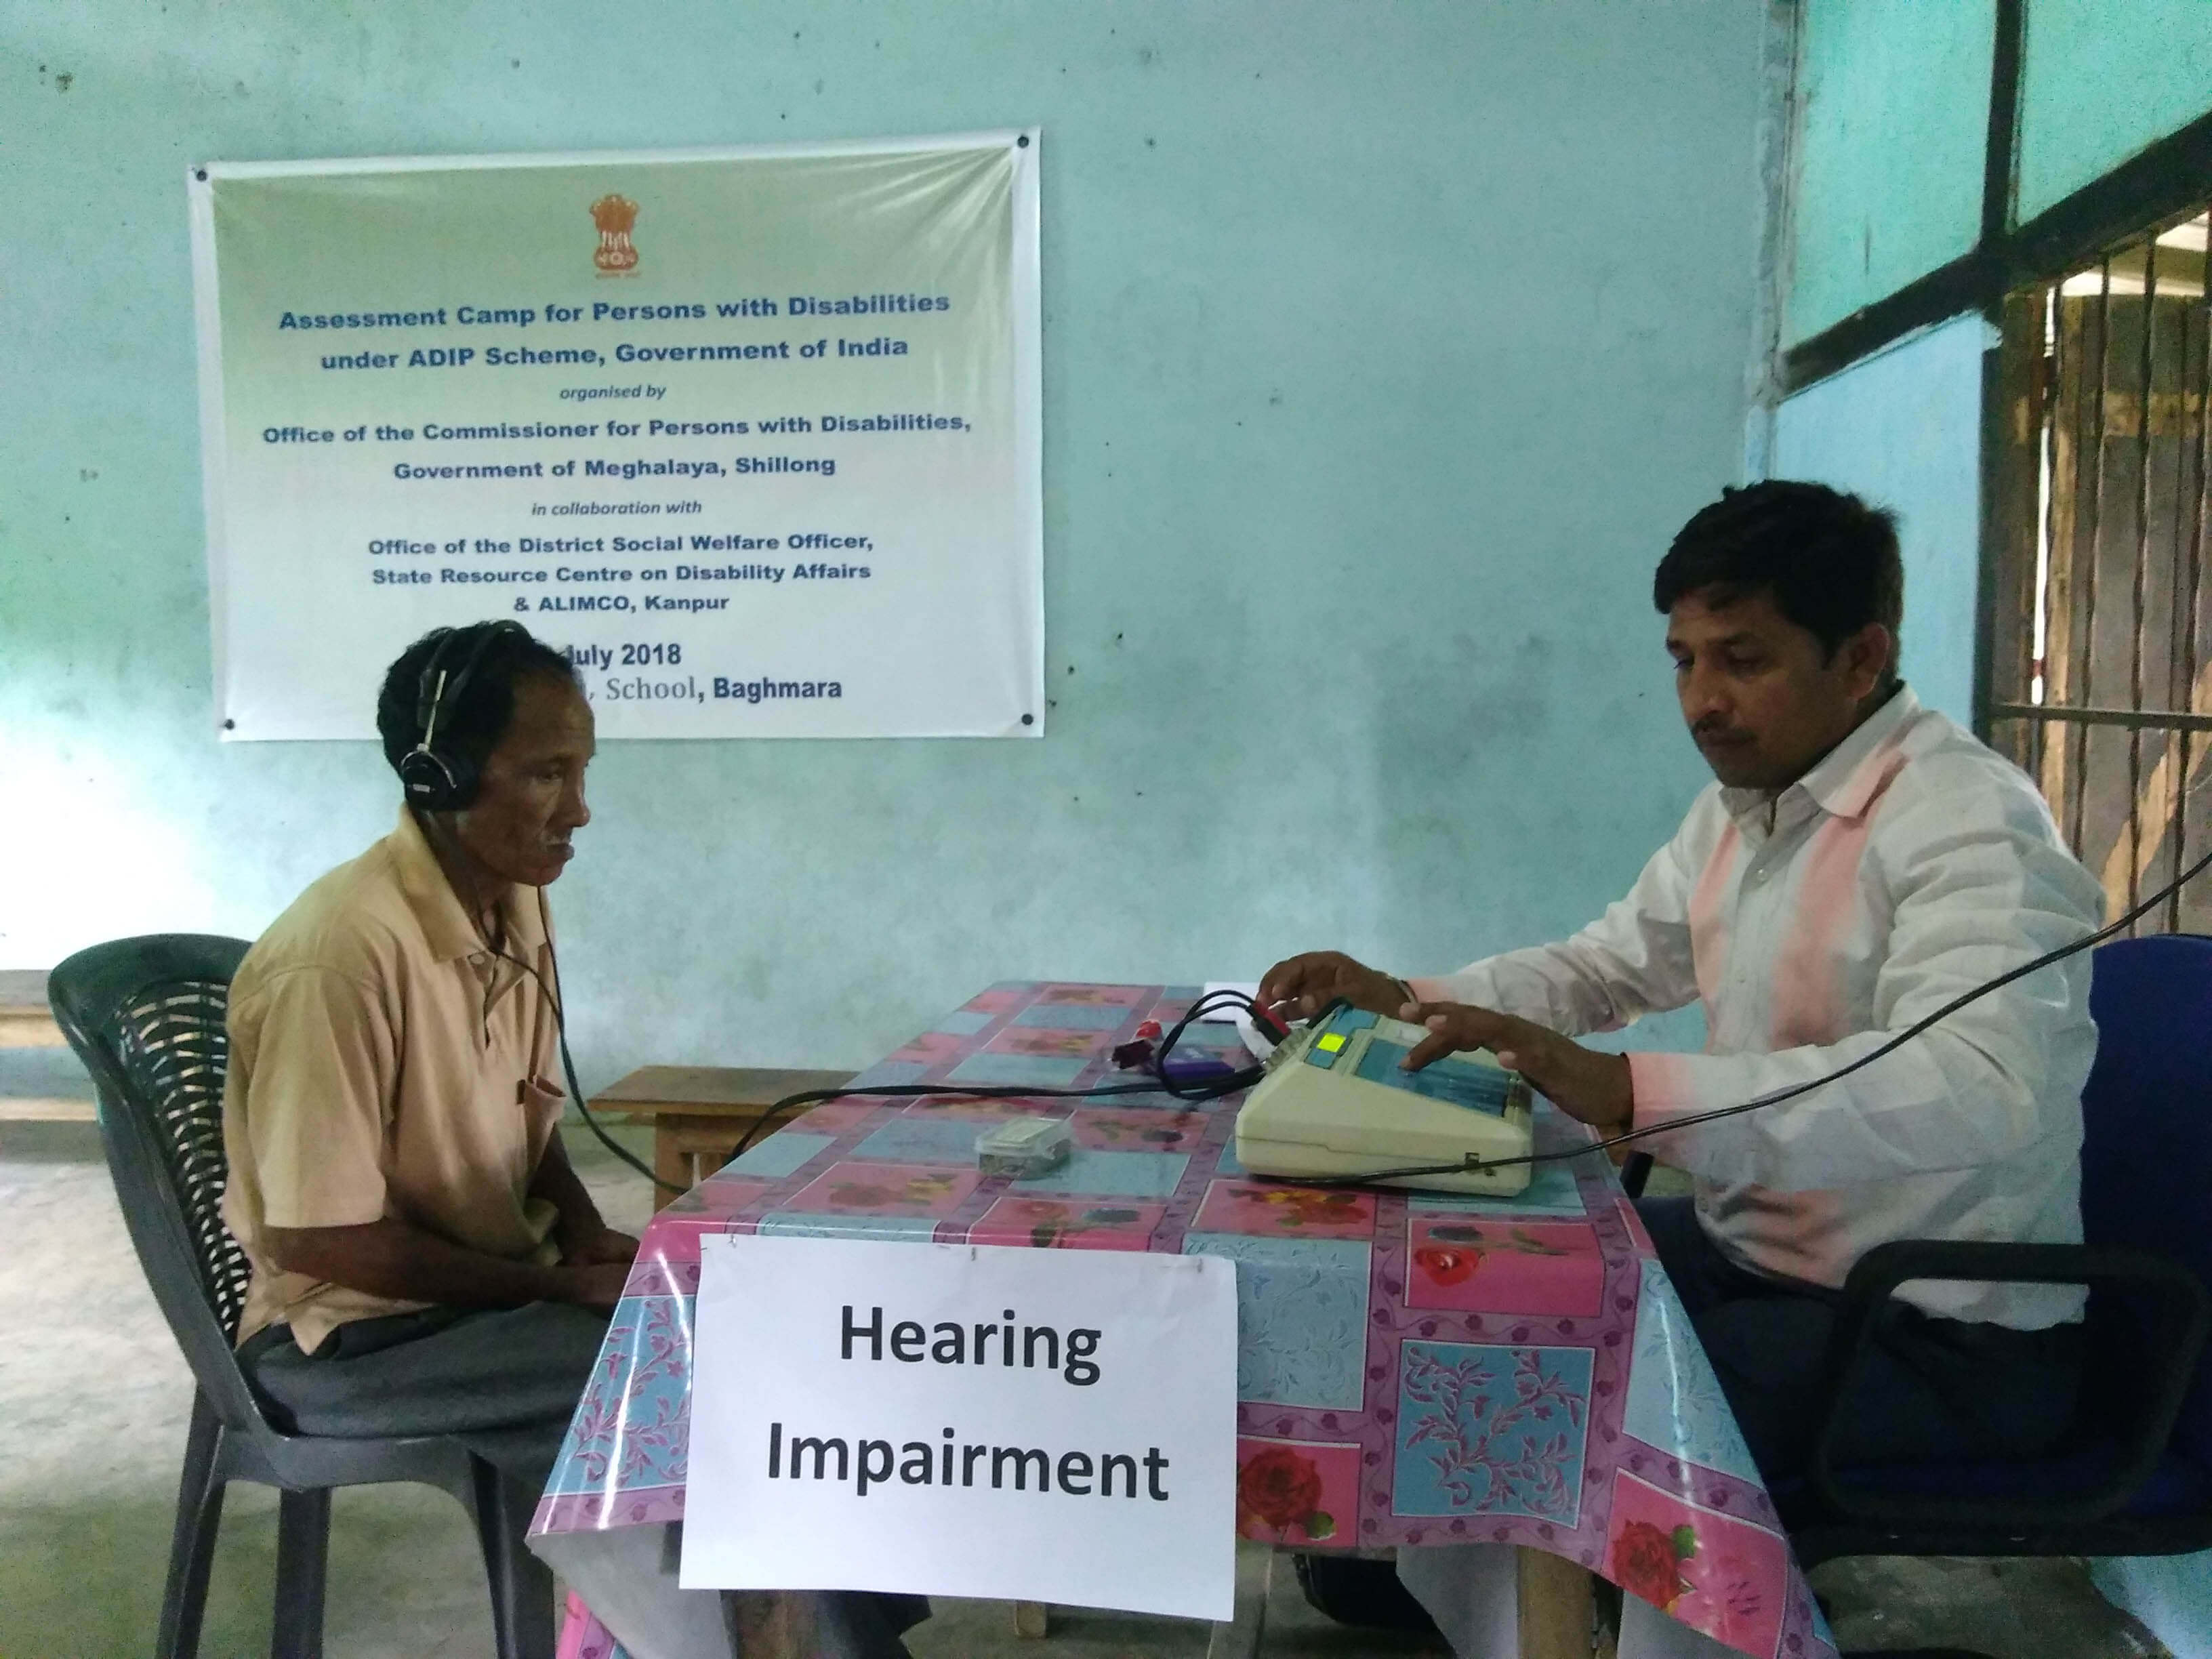 Assessment camp for persons with disabilities  held